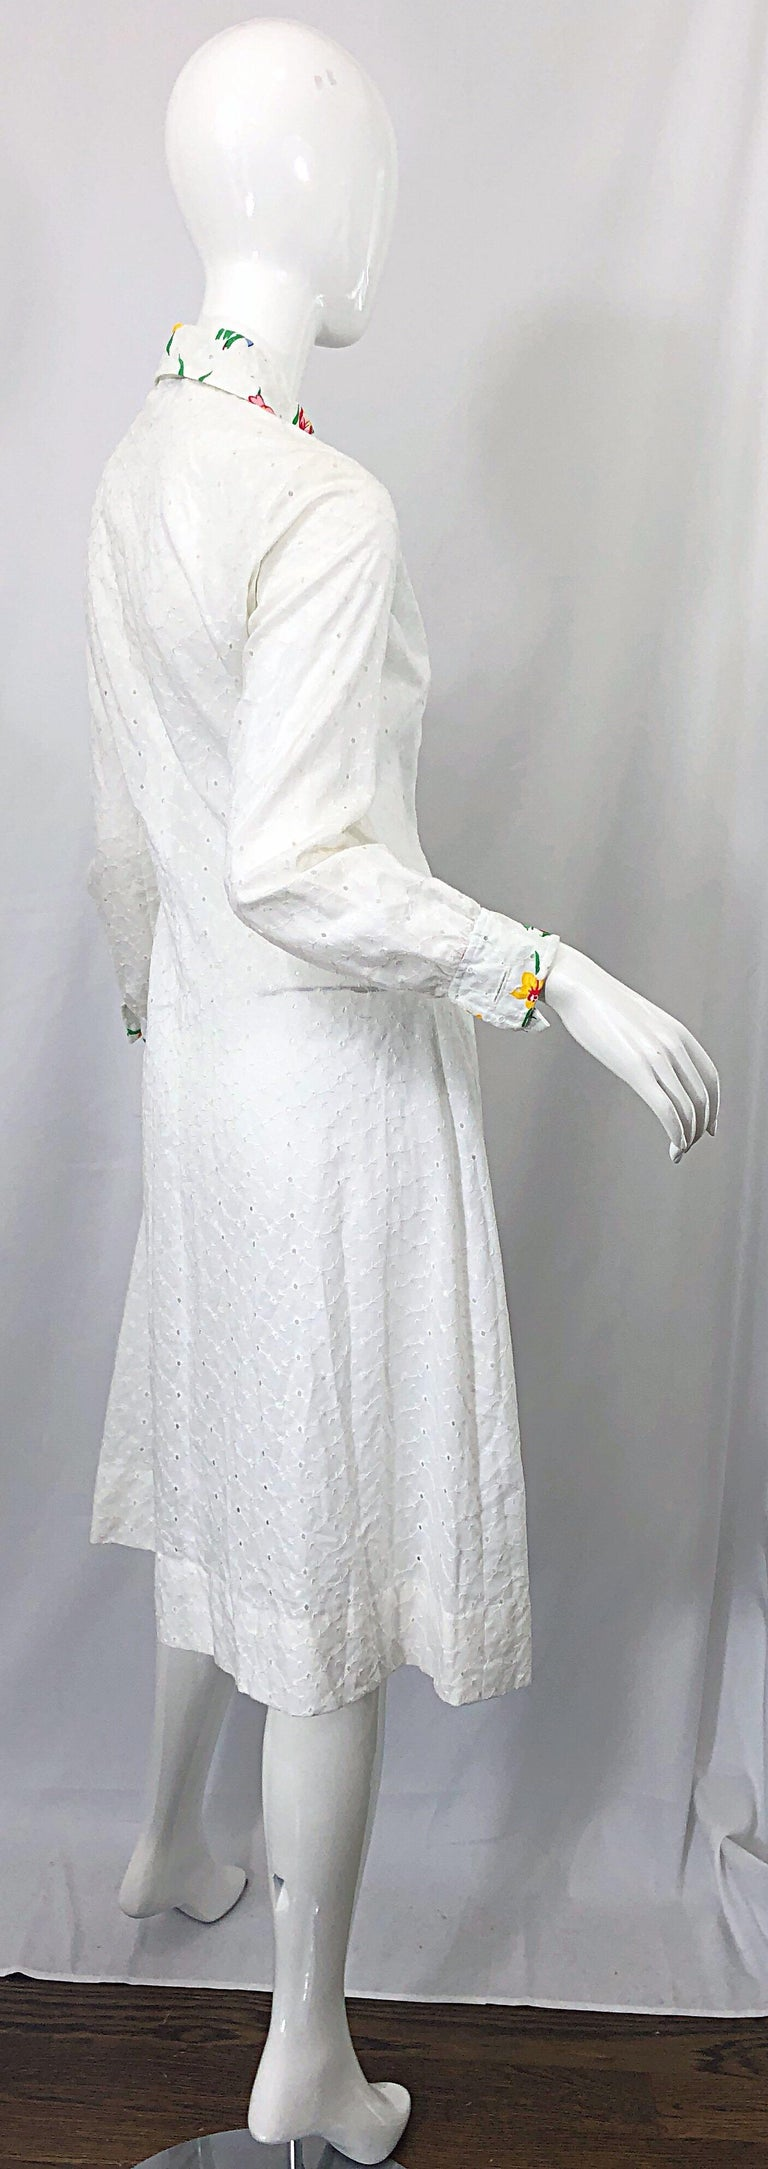 1970s Joseph Magnin White Eyelet Cotton Embrodiered Vintage 70s Shirt Dress For Sale 4